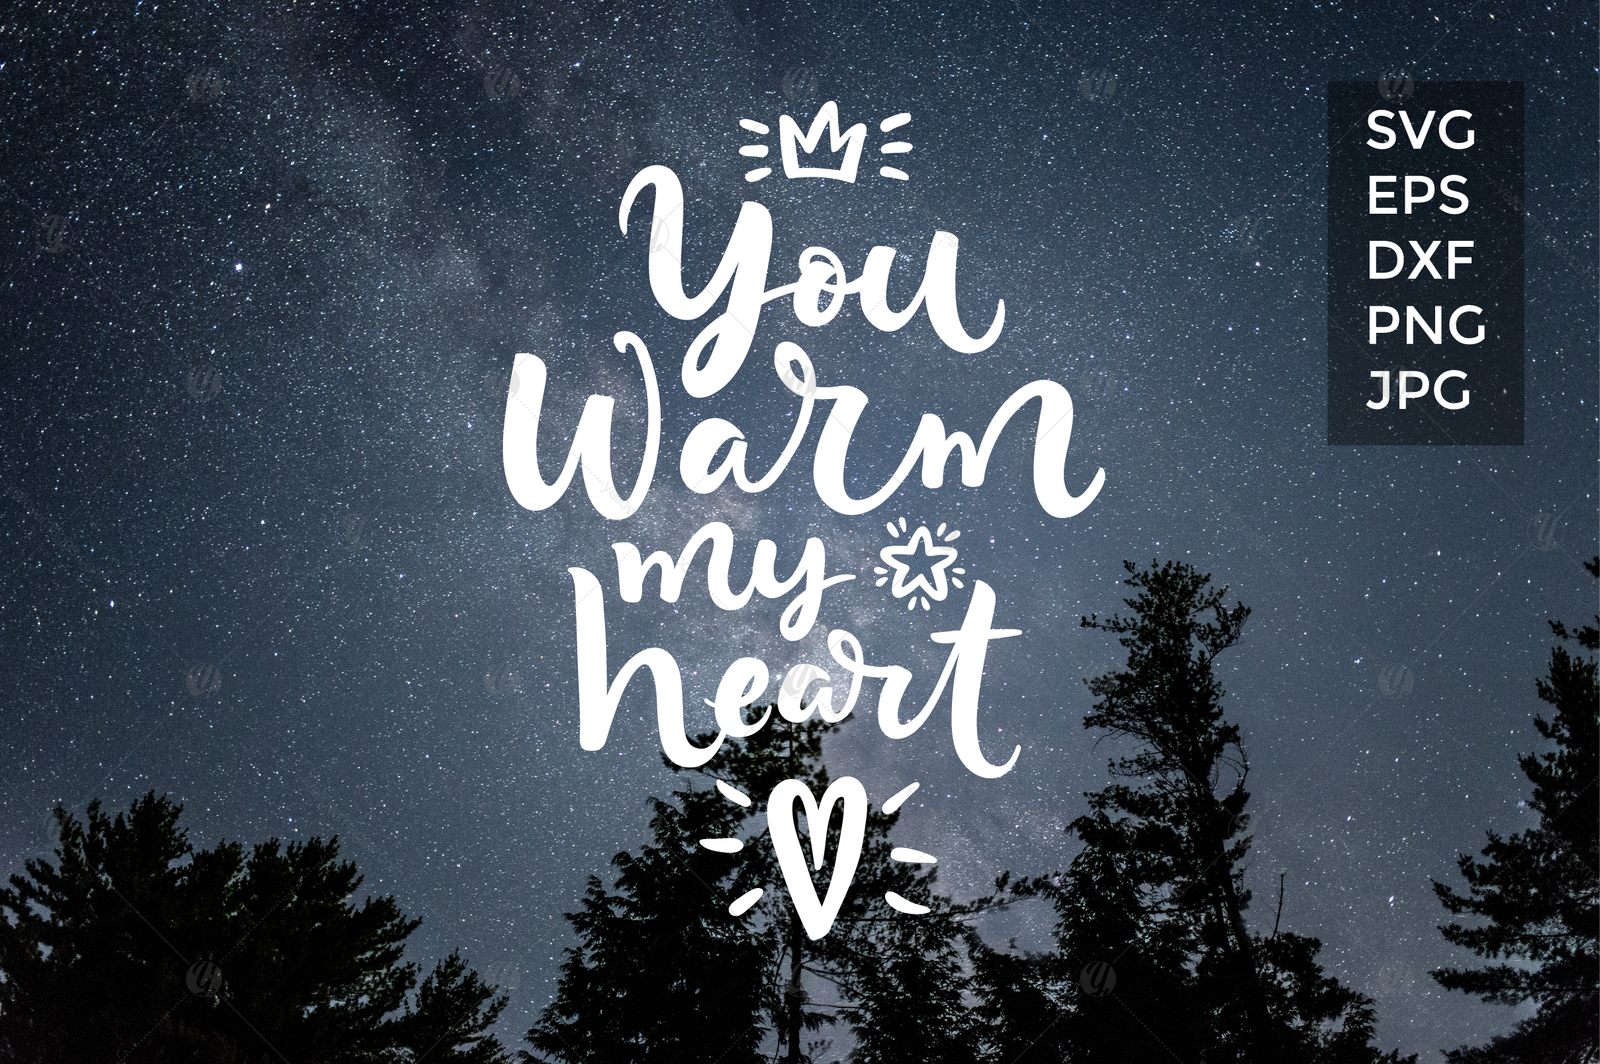 You warm my heart Vector quote